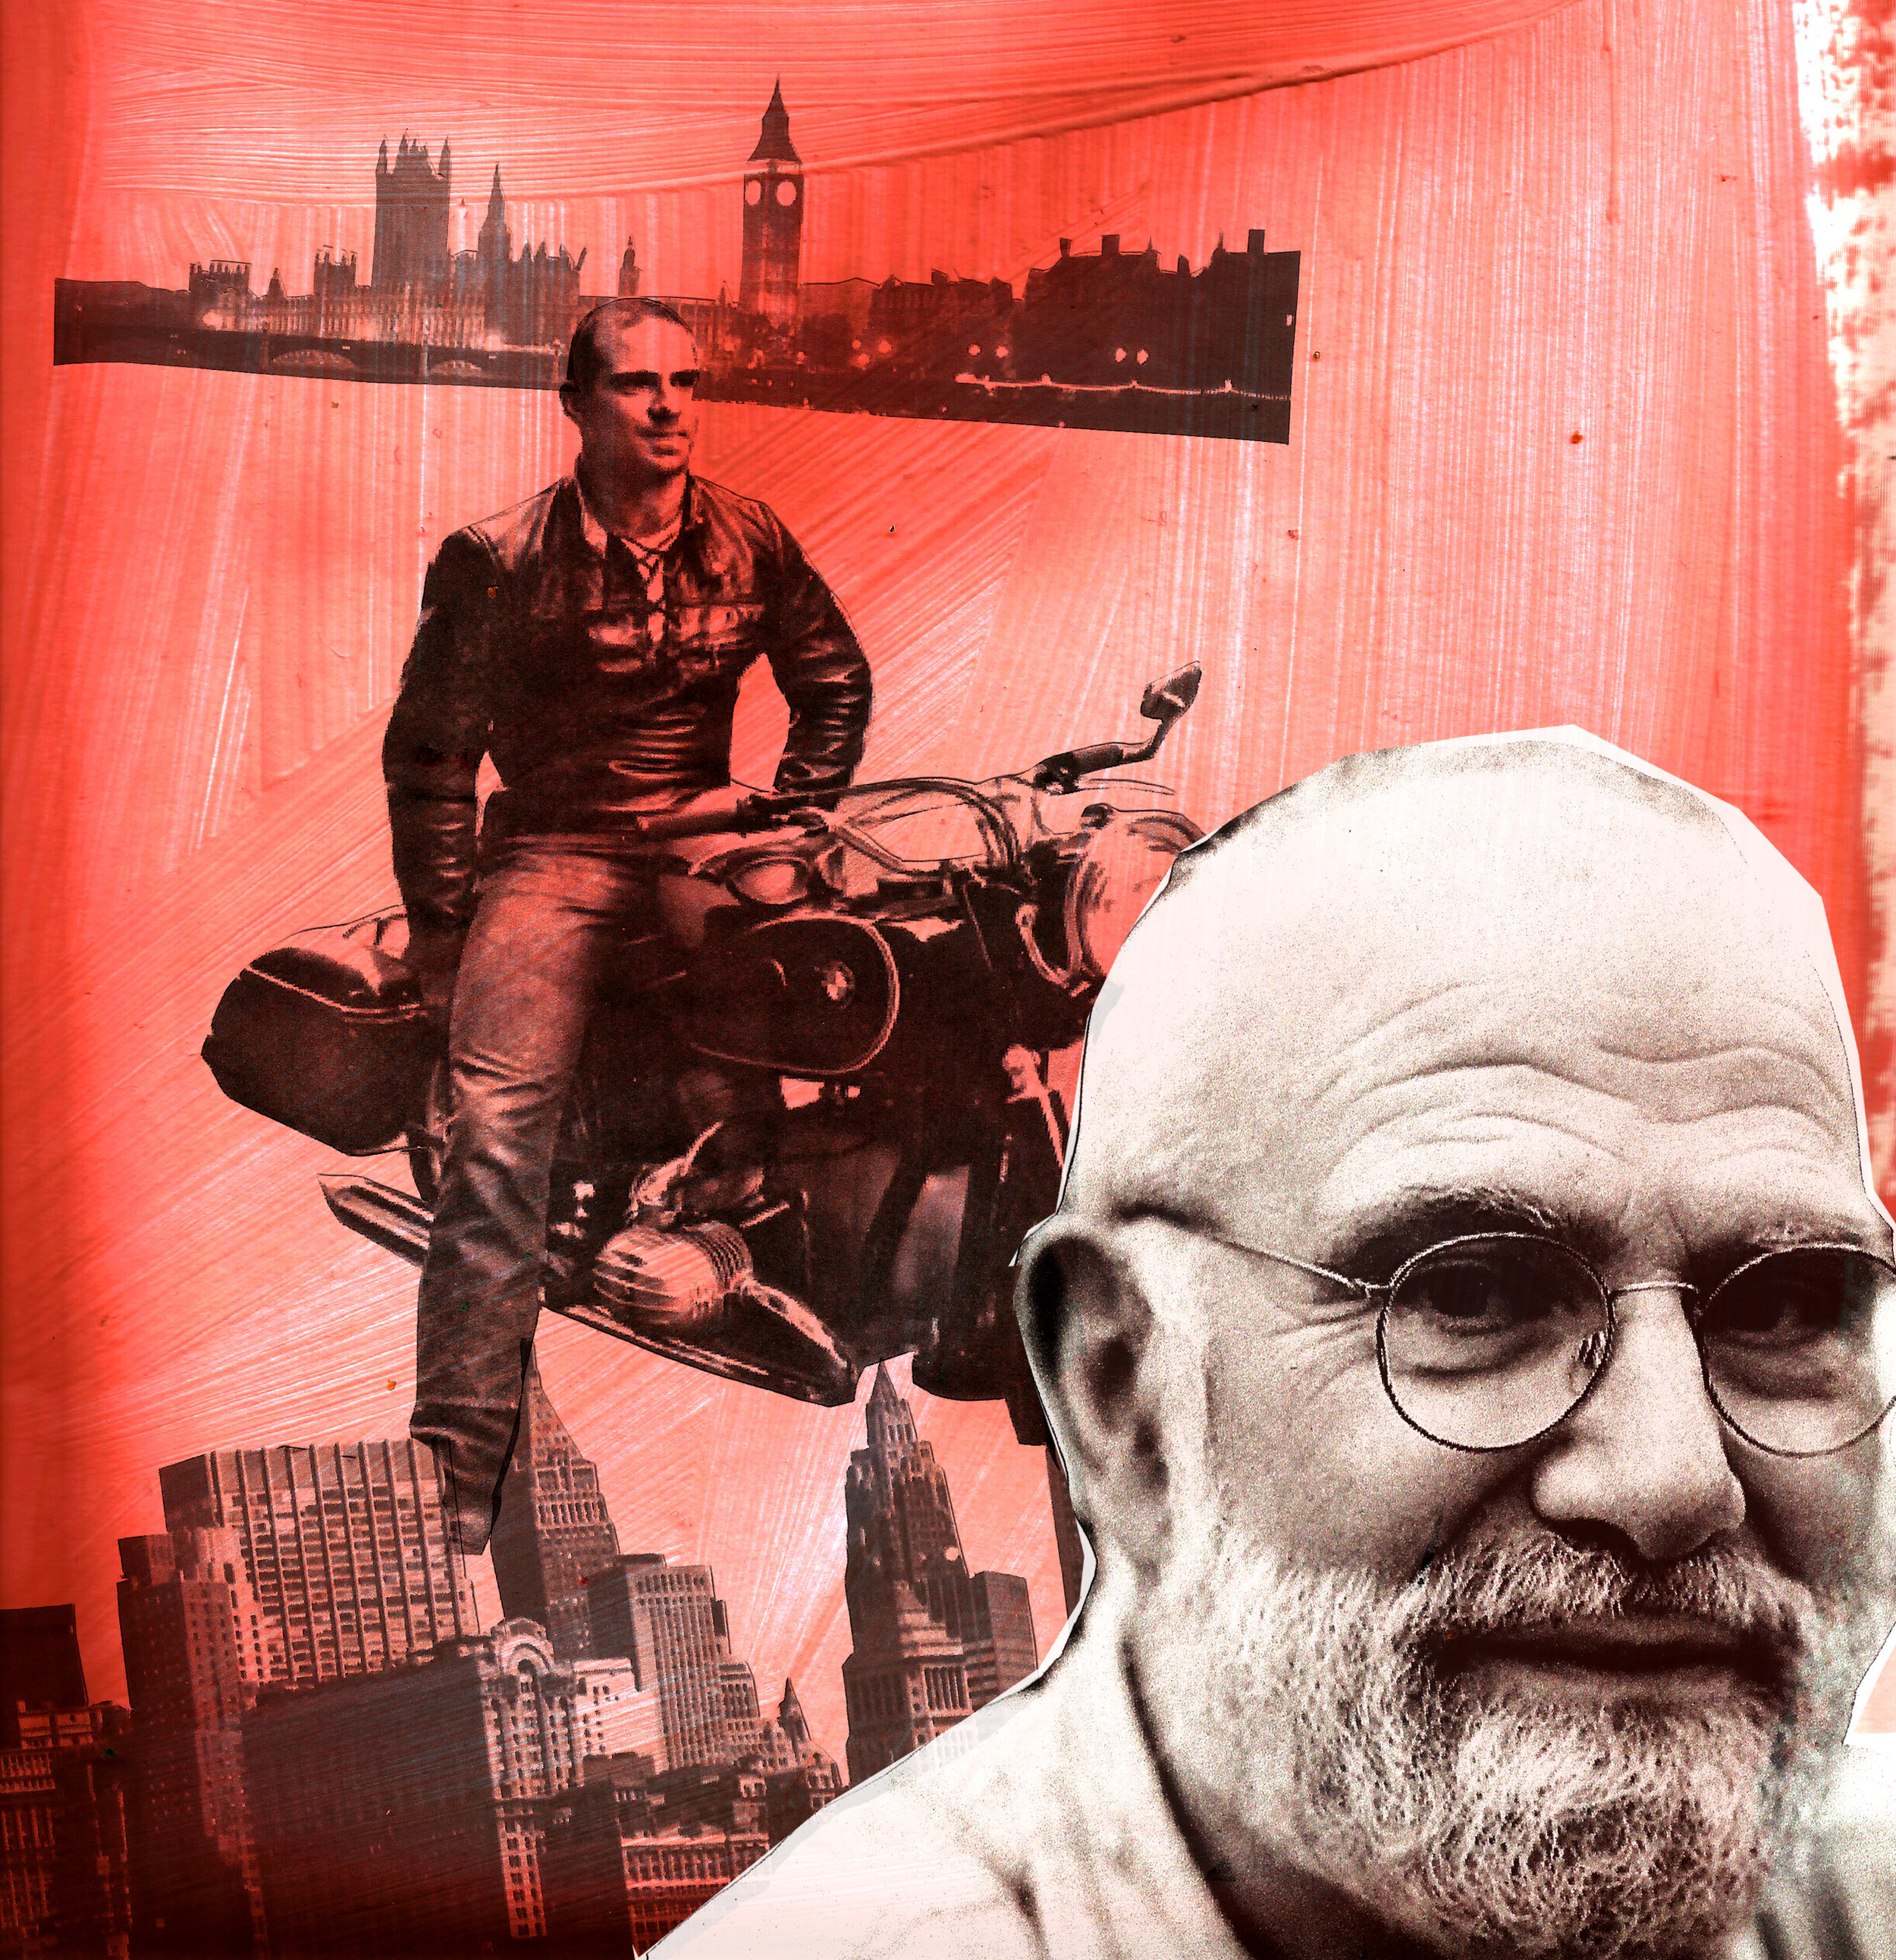 Book Review: Oliver Sacks - On the Move